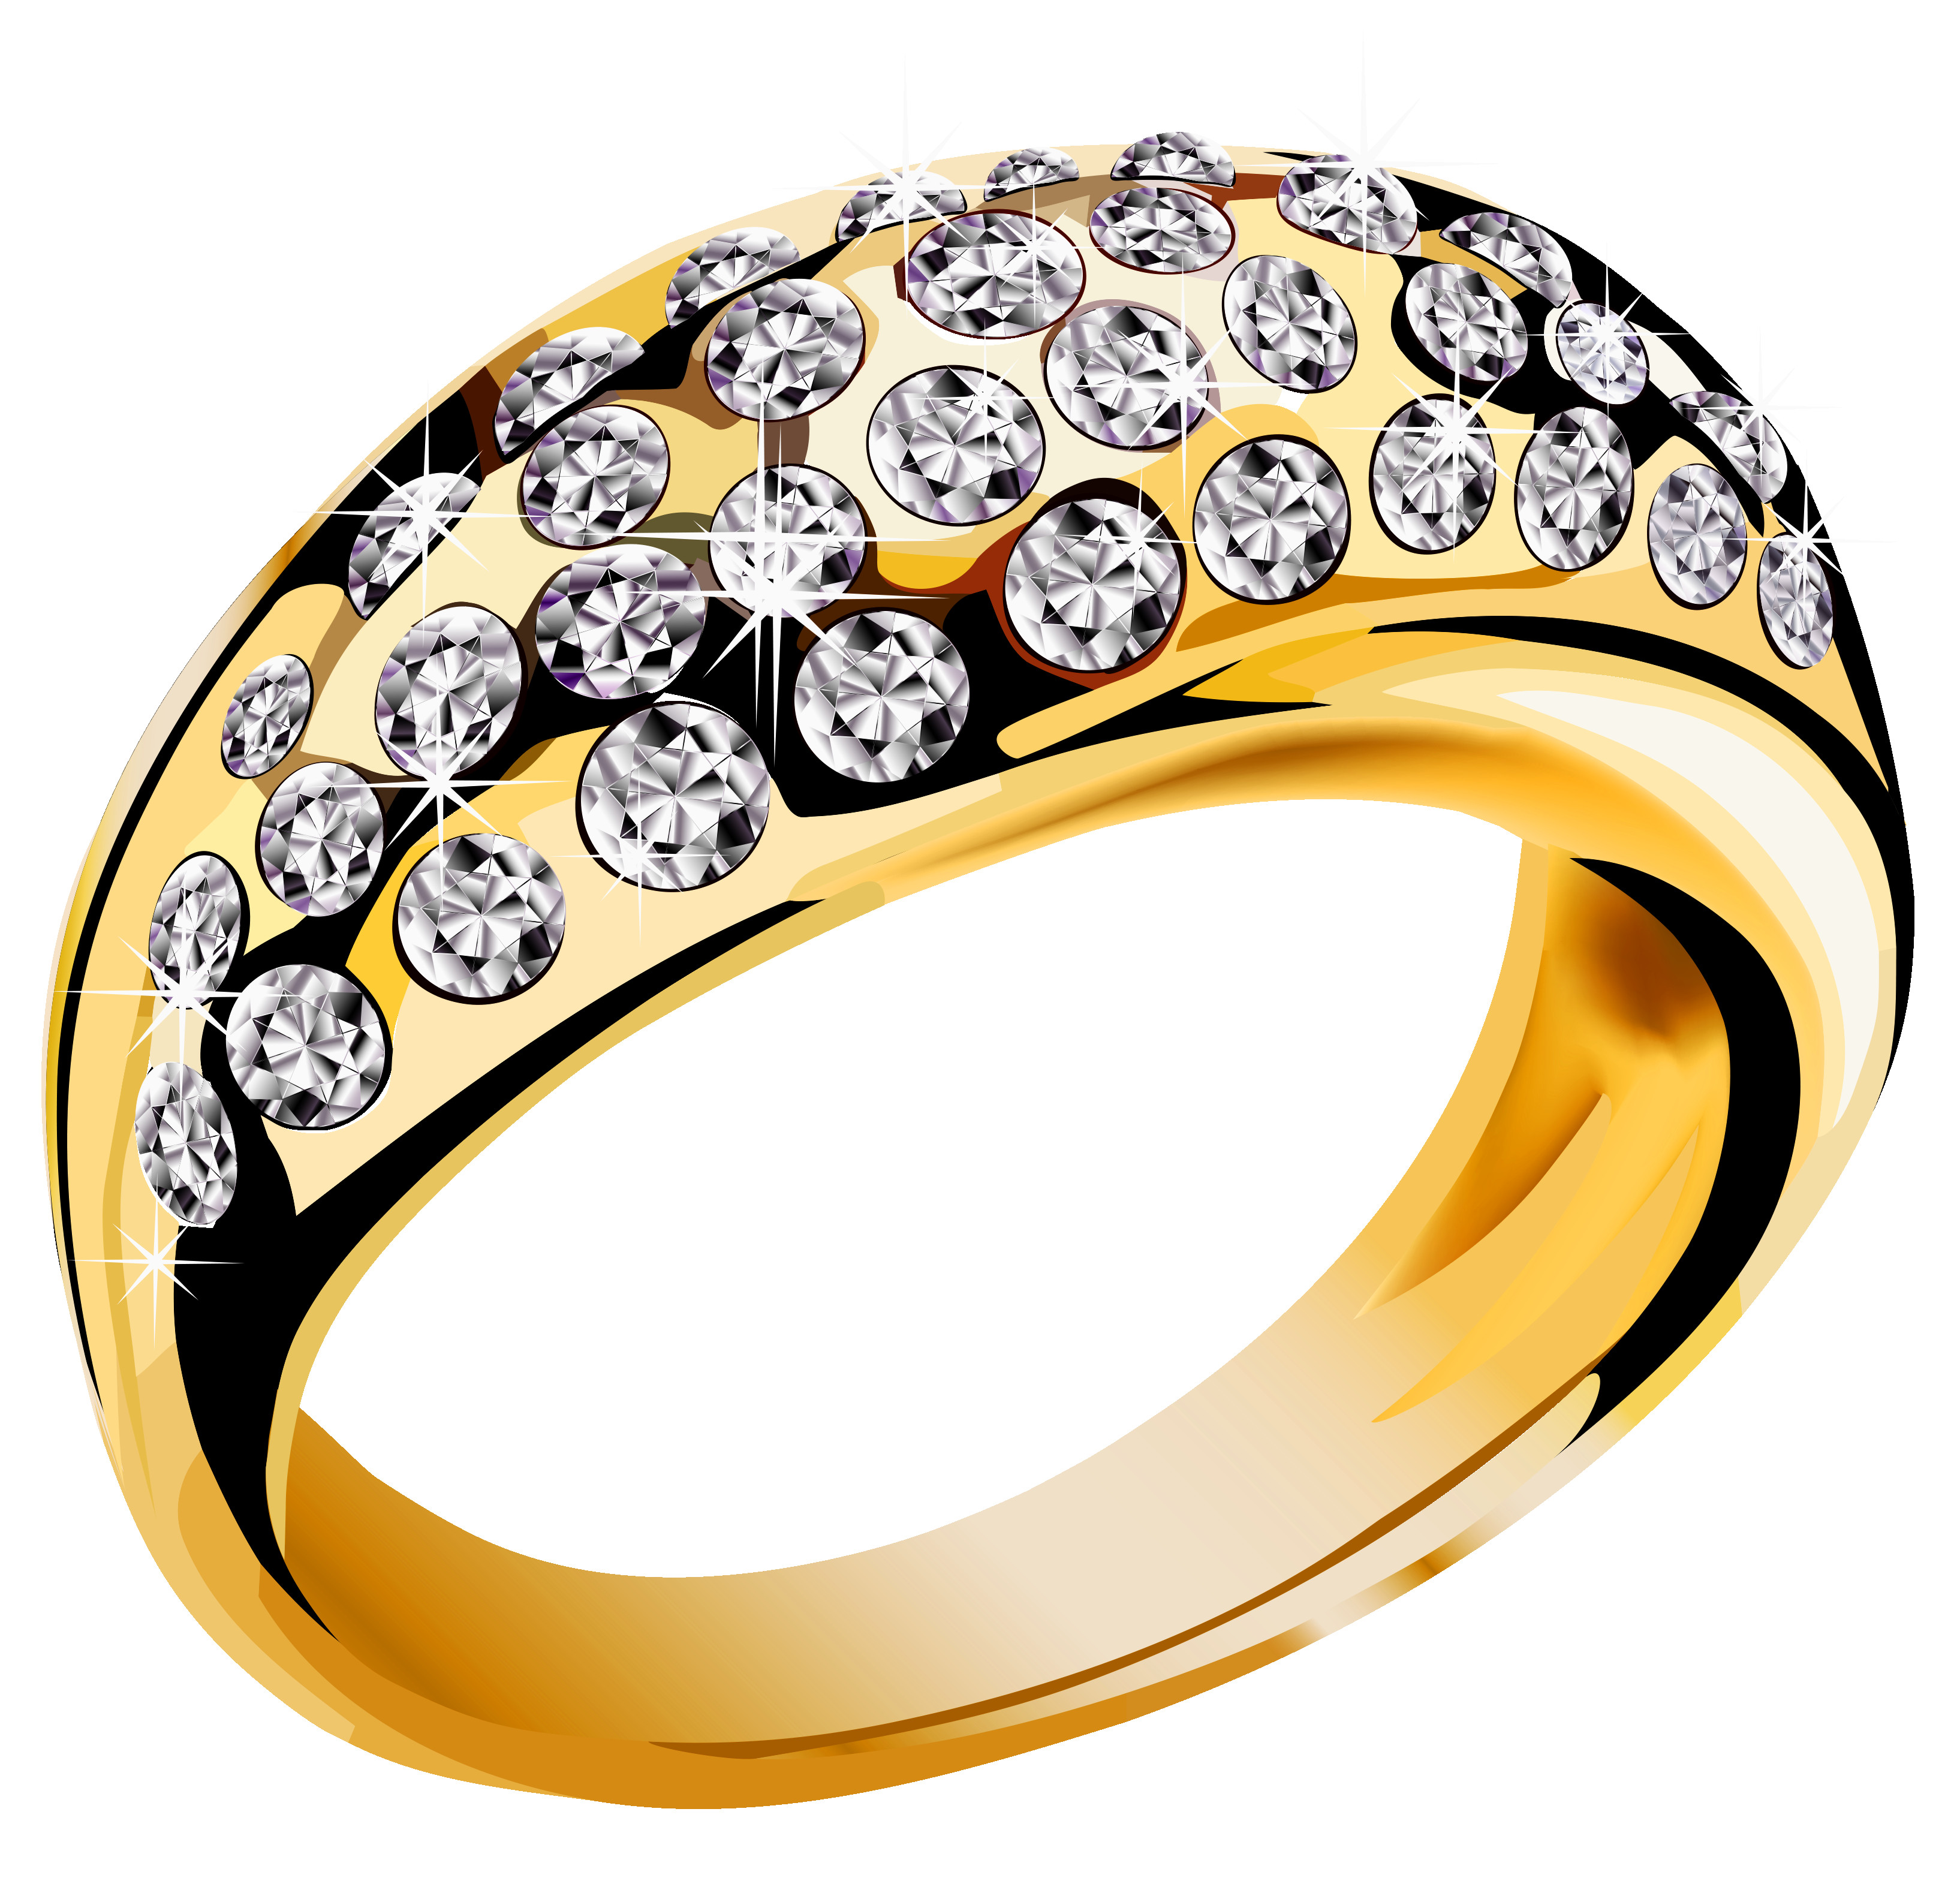 3269x3132 Wedding Rings Png Clip Art Best Web Clipart Endearing Enchanting